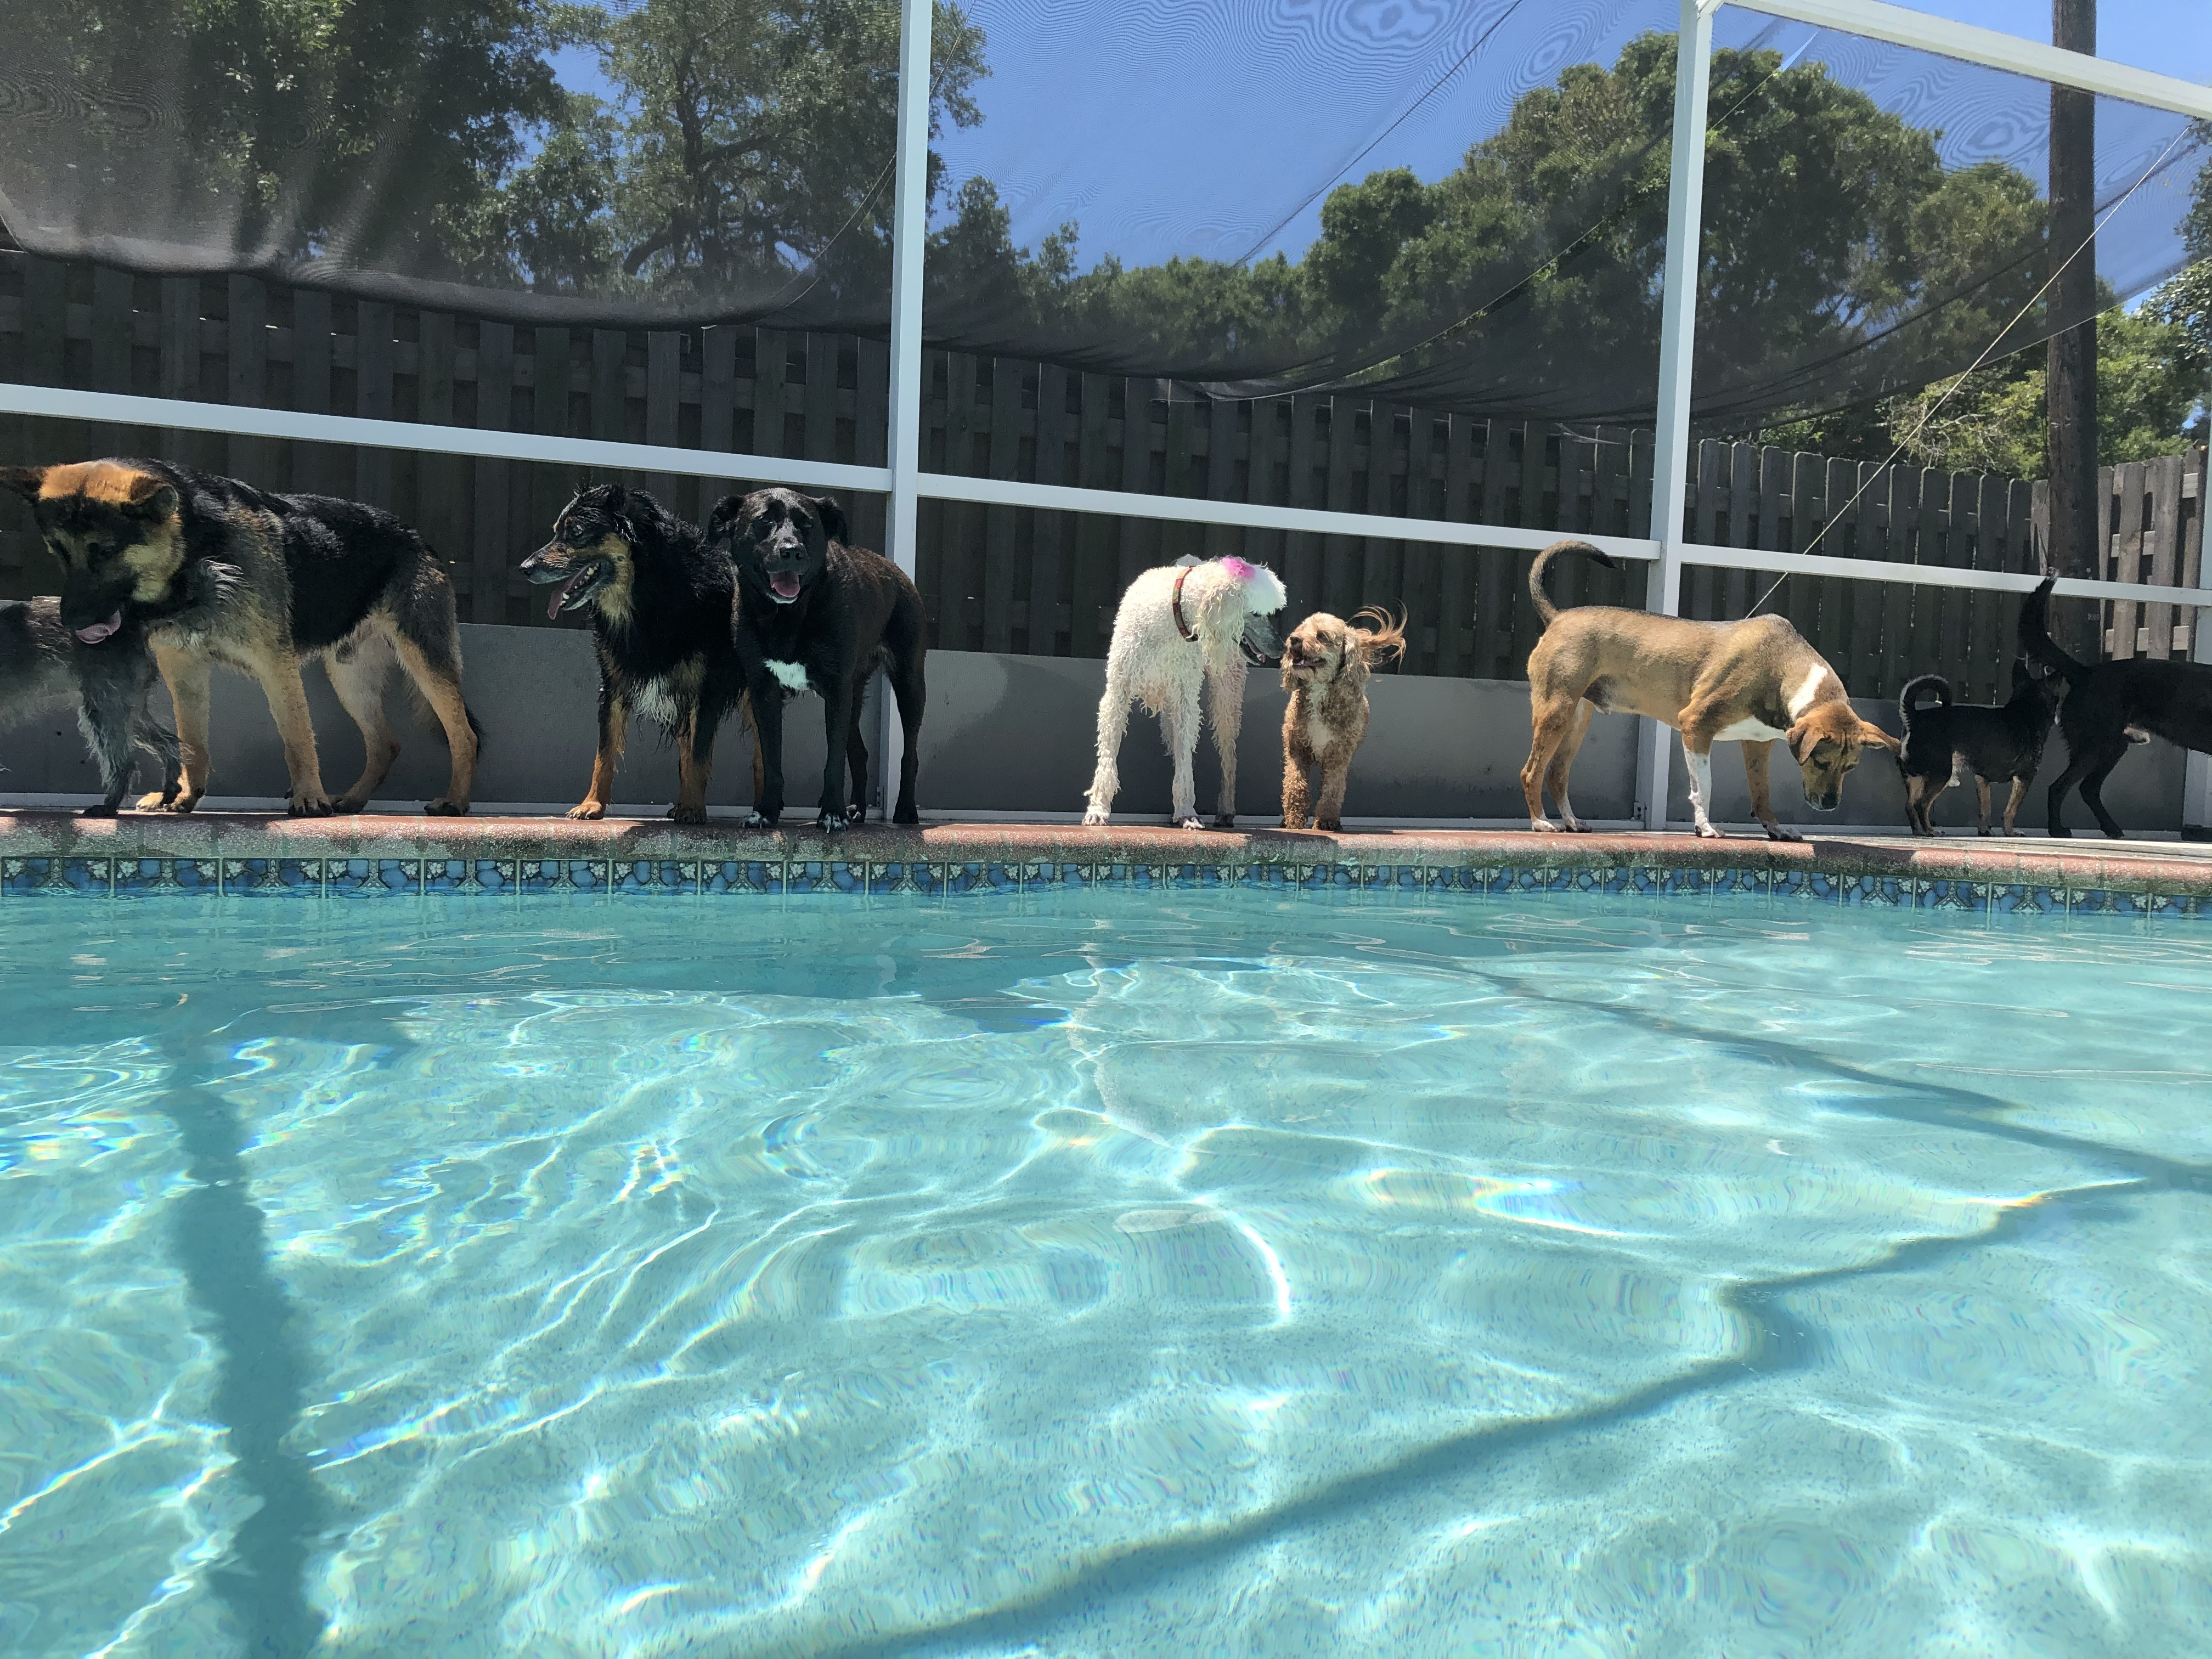 Pool Time while the pups are here